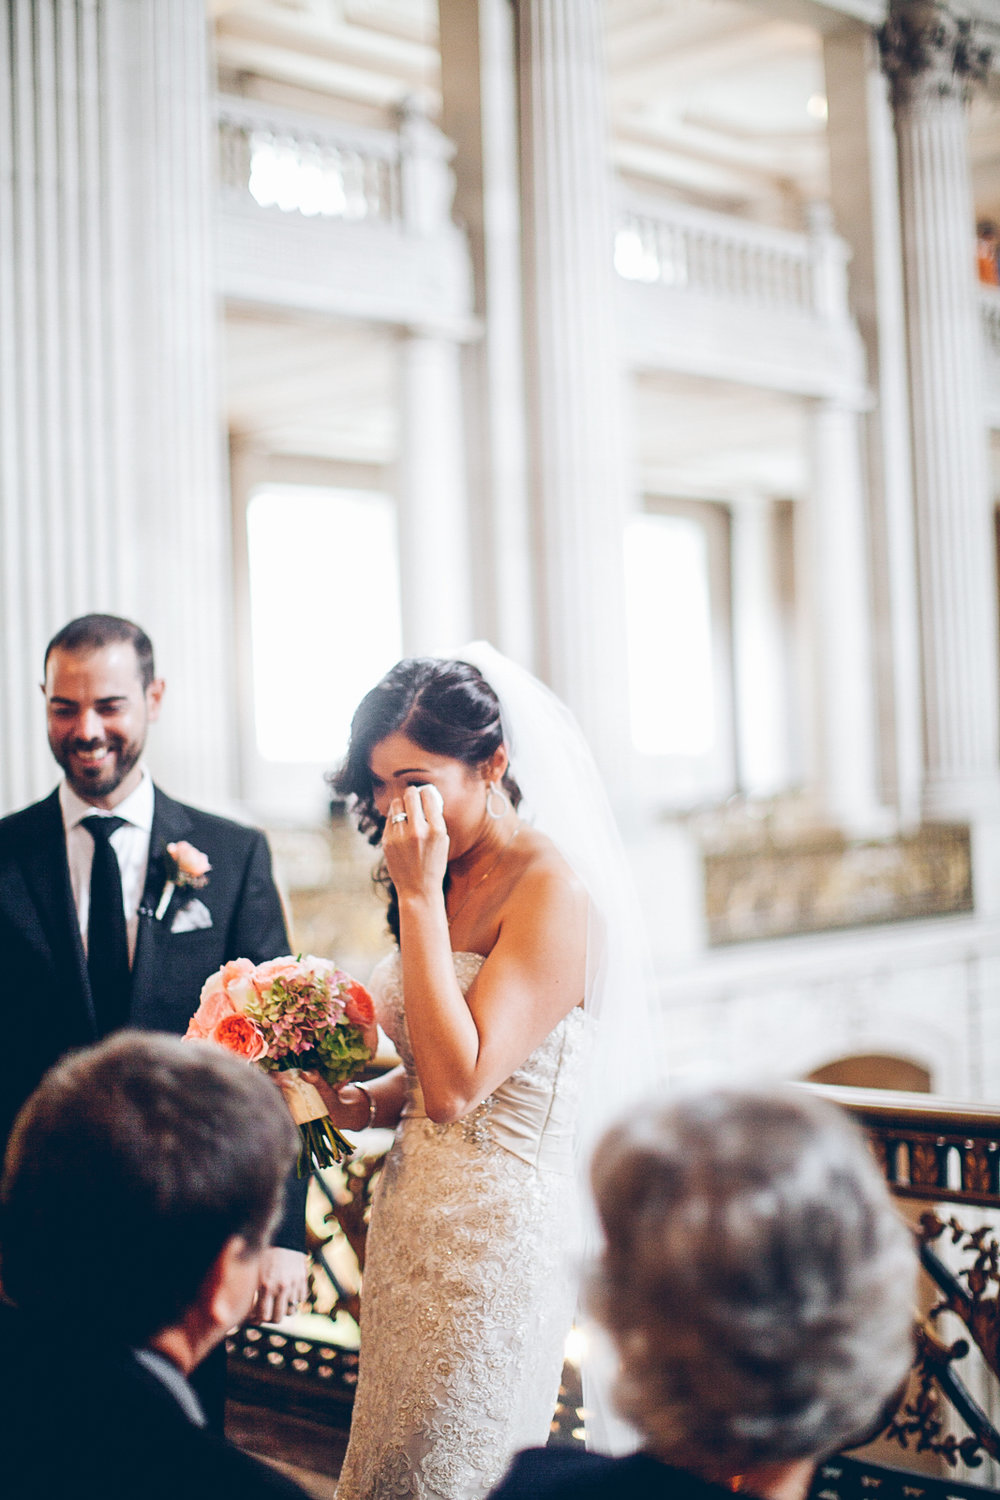 San_francisco_city_hall_wedding_photography_meegan_travis_ebony_siovhan_bokeh_photography_27.jpg